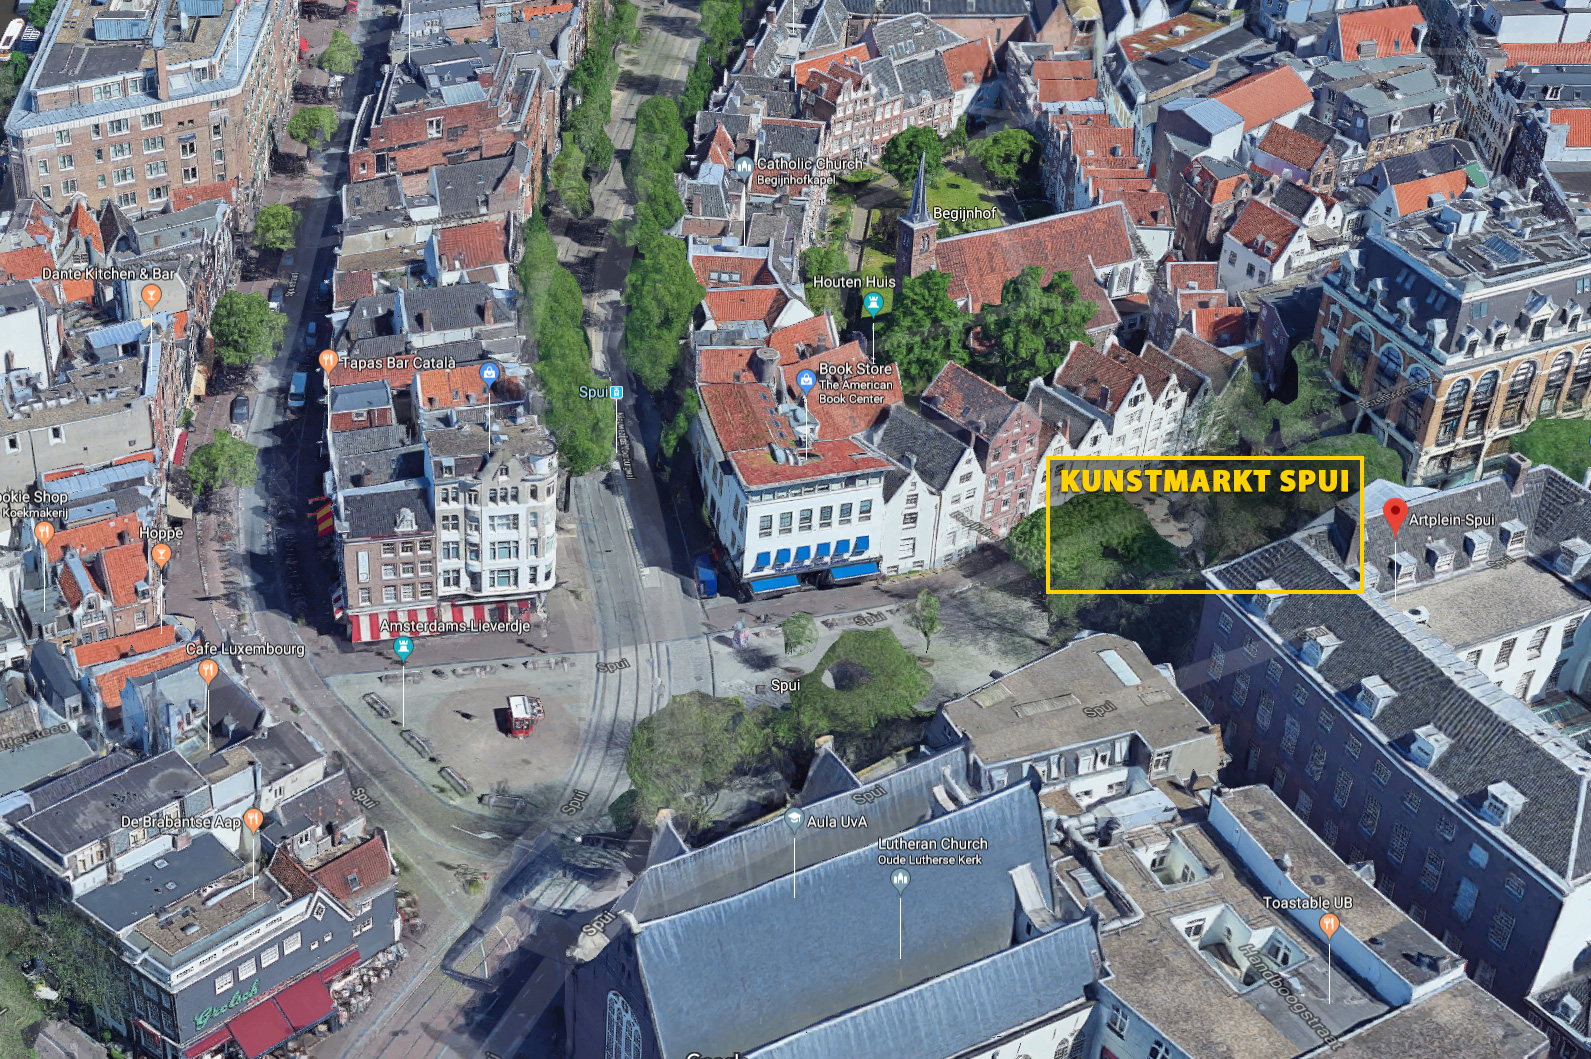 A closer aerial view of Art Plein Spui.in Amsterdam.